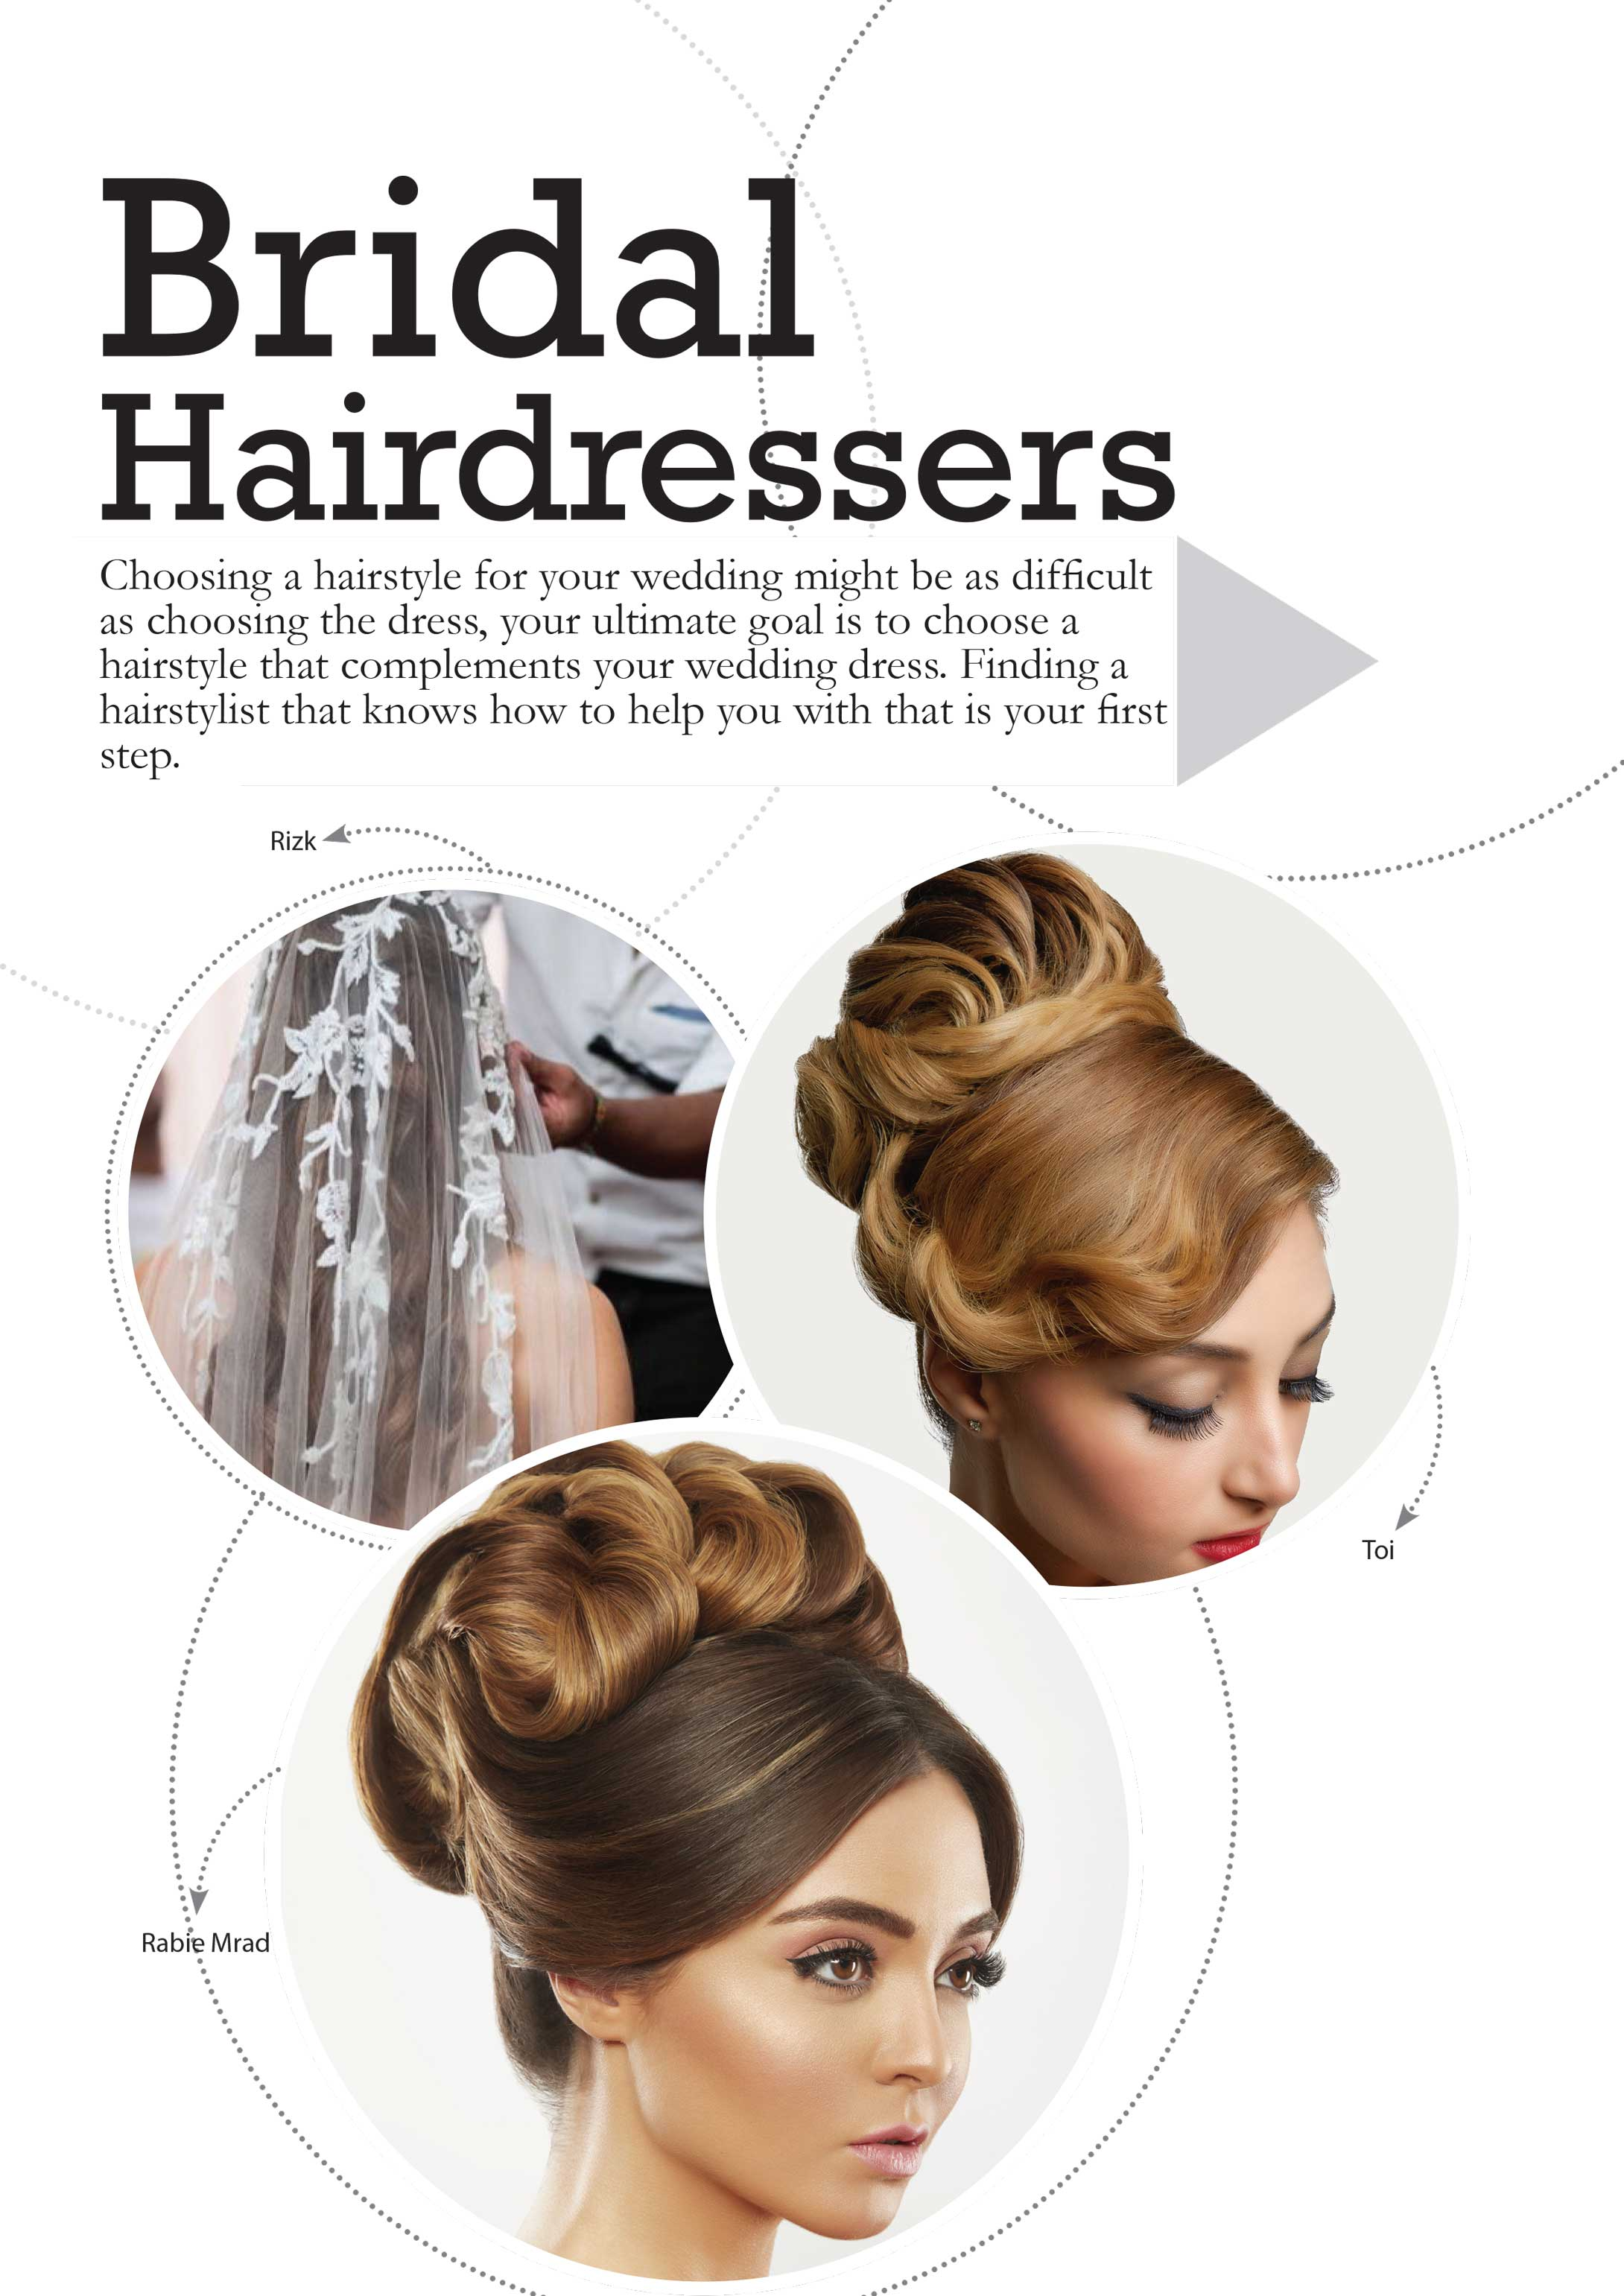 Choosing a hairstyle for your wedding might be as difficult as choosing the dress, your ultimate goal is to choose a hairstyle that complements your wedding dress. Finding a hairstylist that knows how to help you with that is your first step.